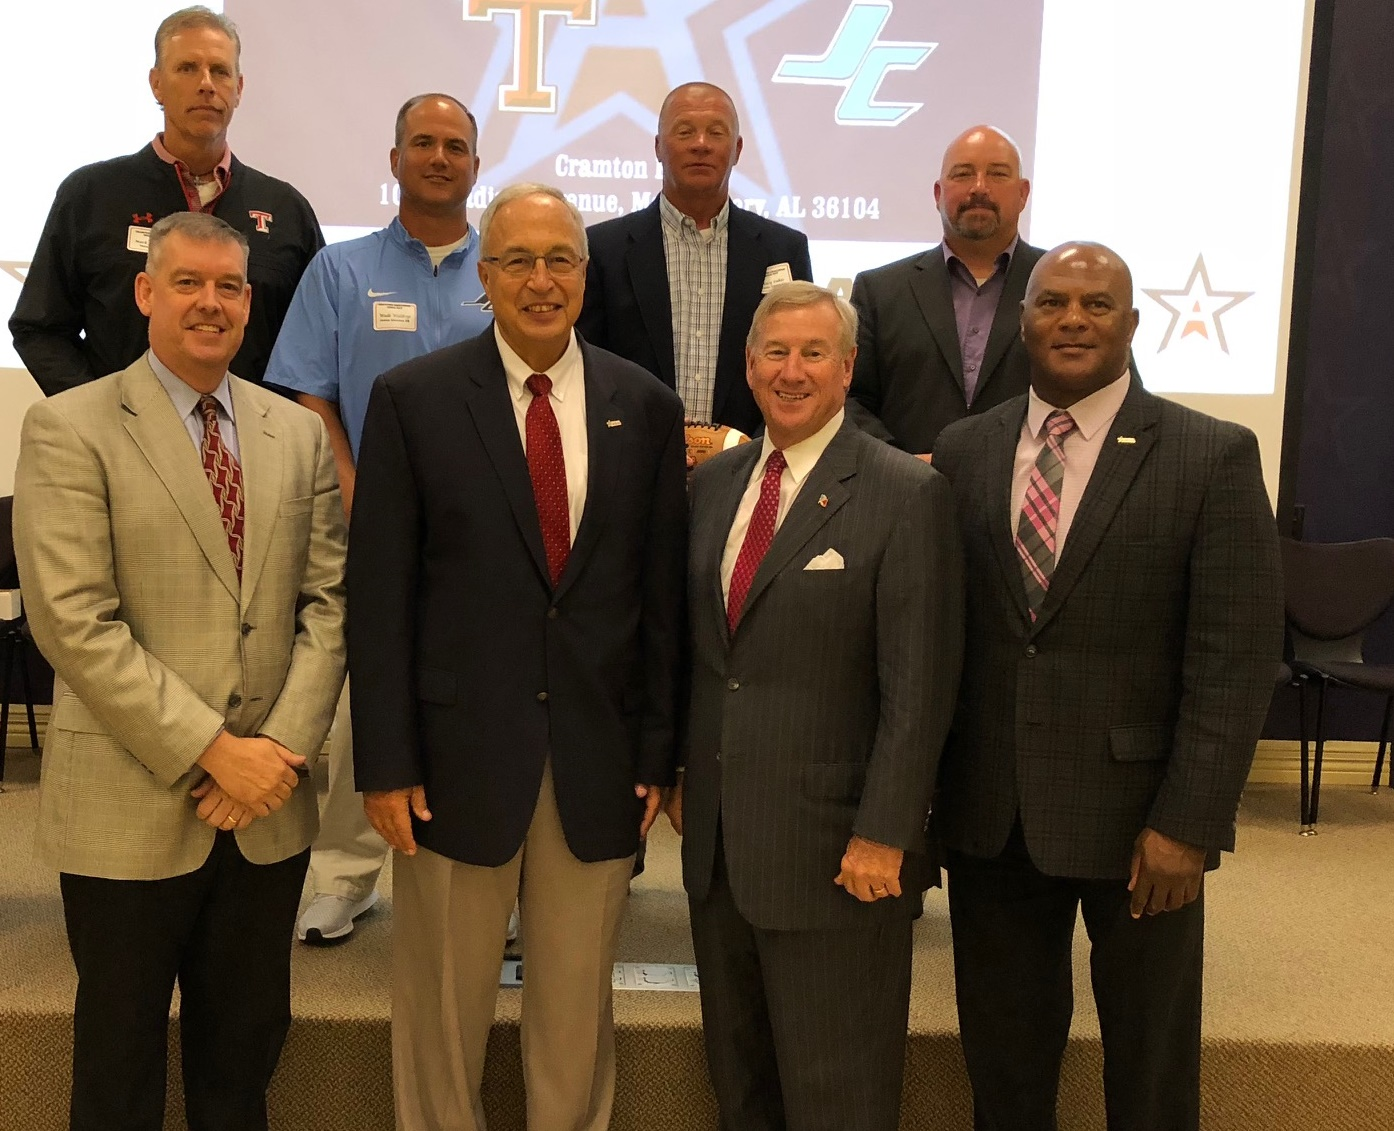 Coaches, Players Gather at Champions Challenge Press Conference Wednesday